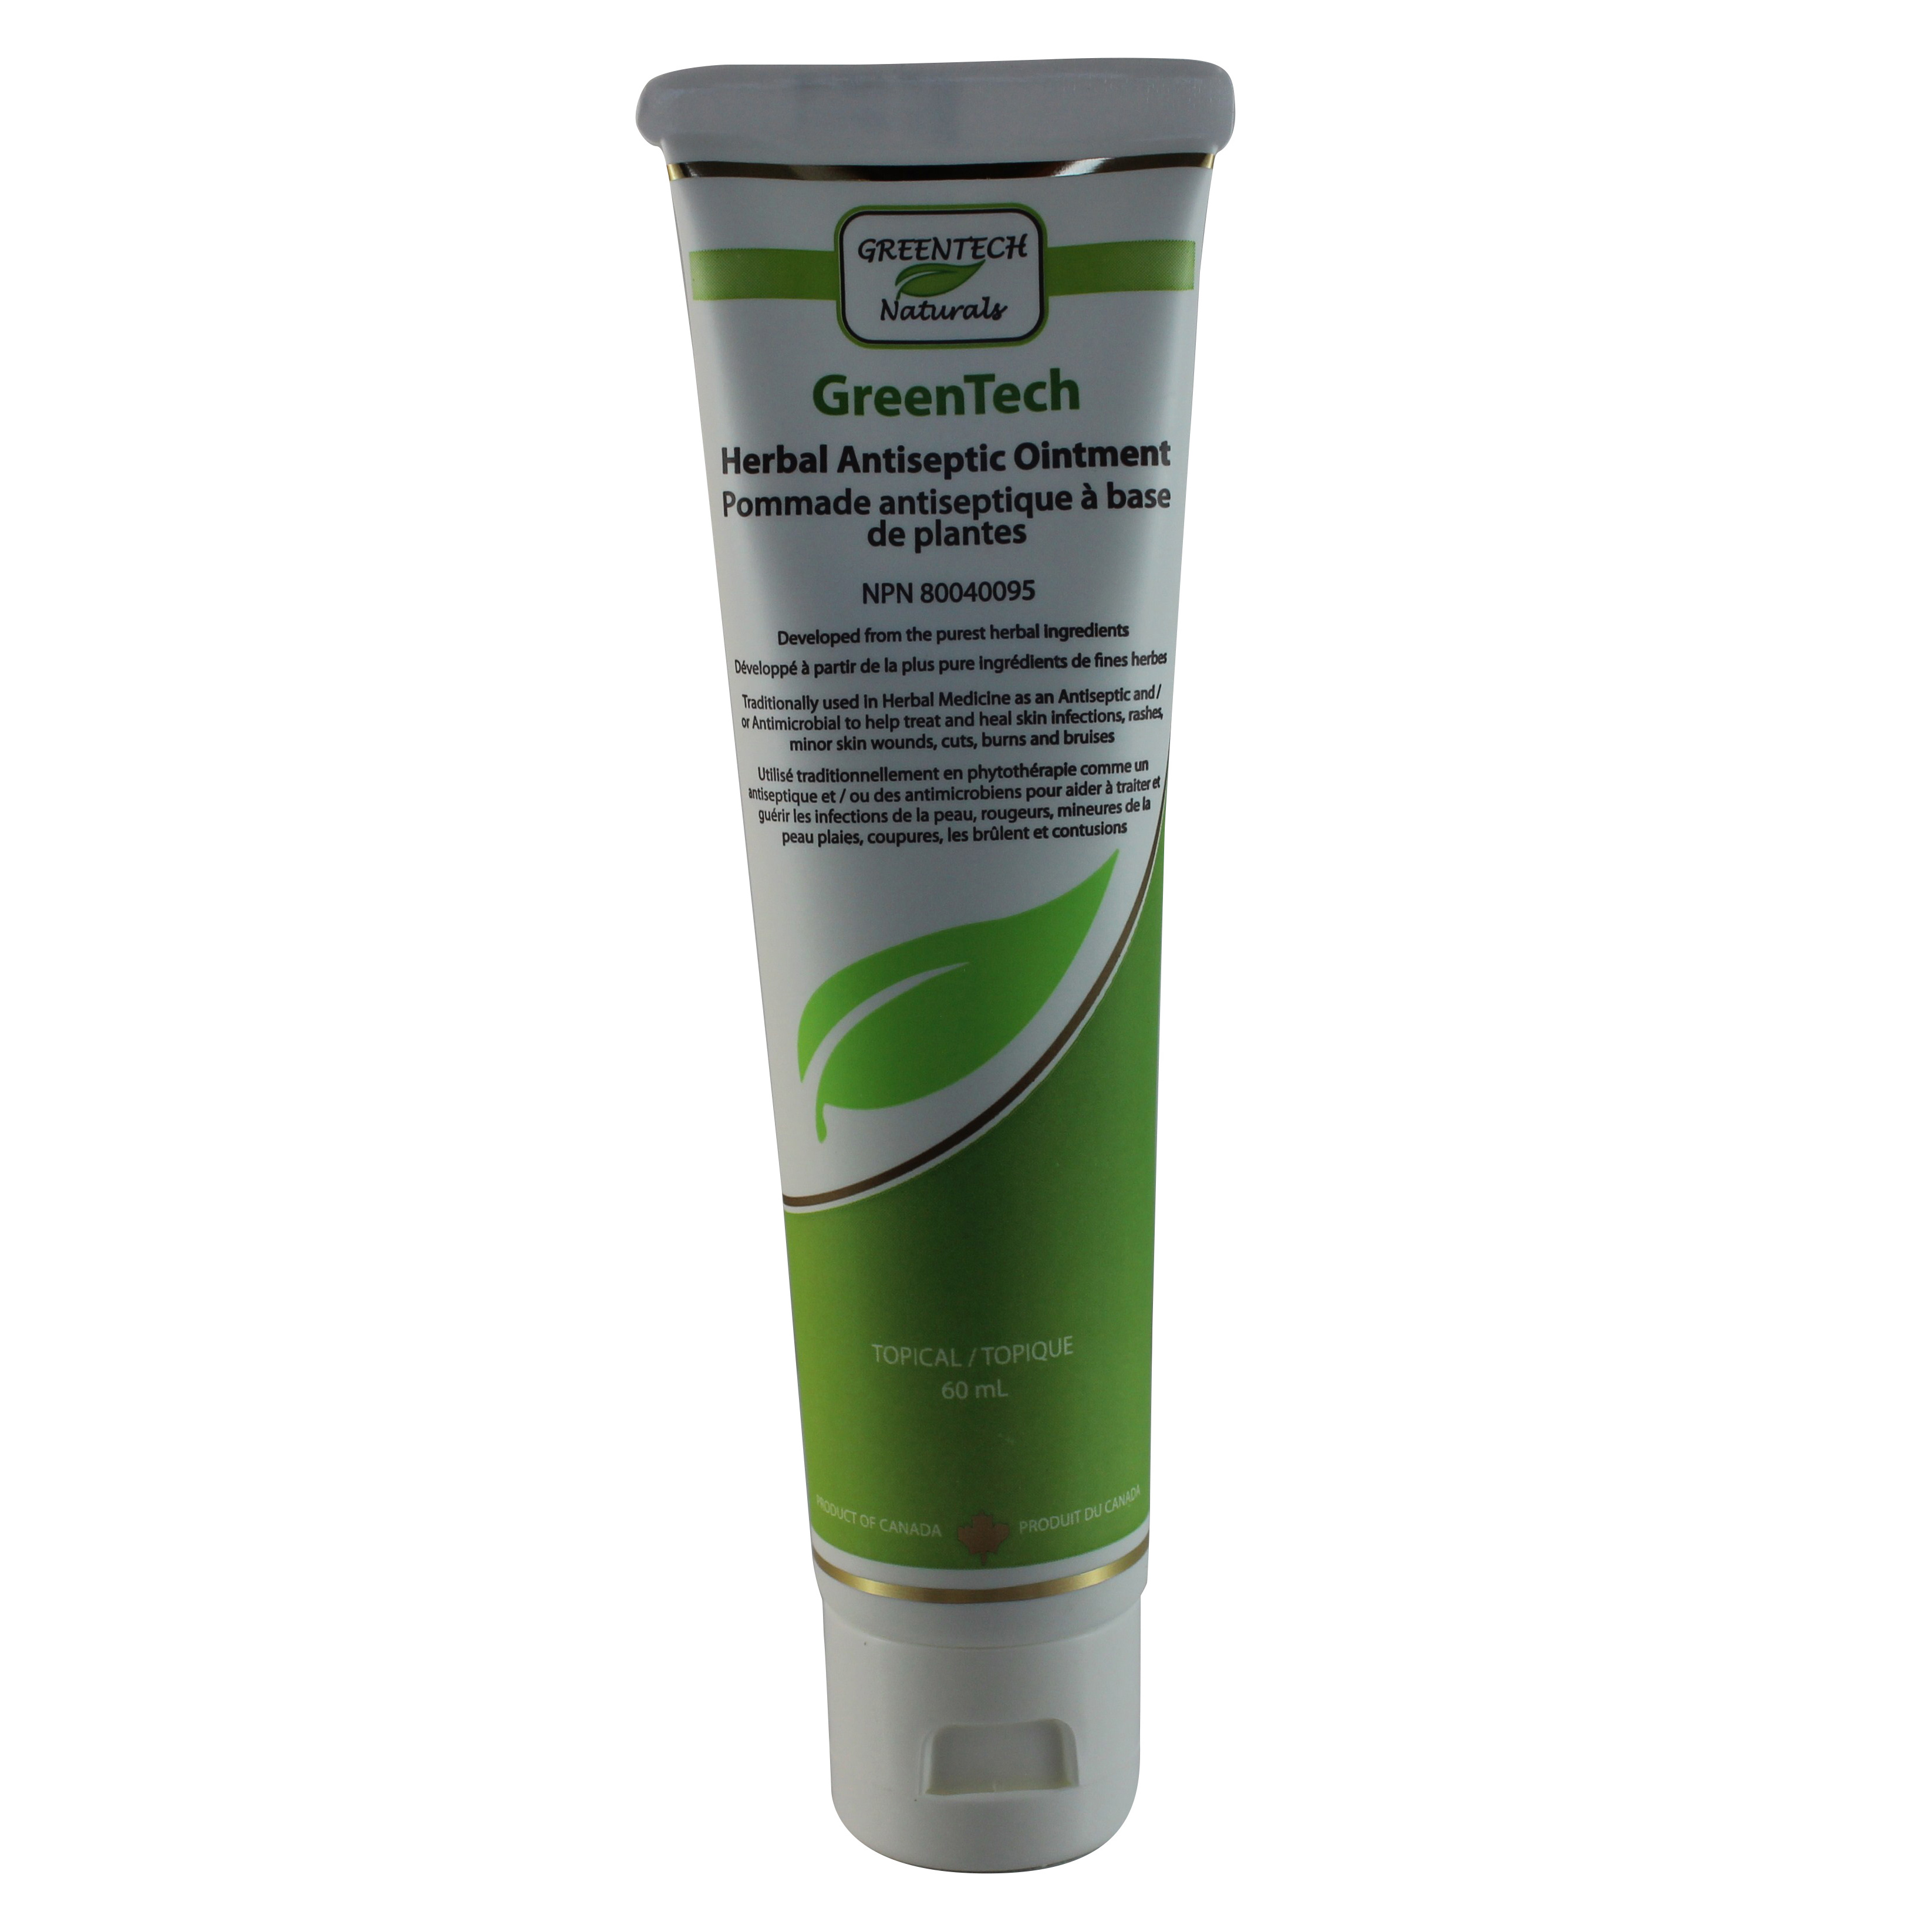 HERBAL ANTI-SEPTIC OINTMENT